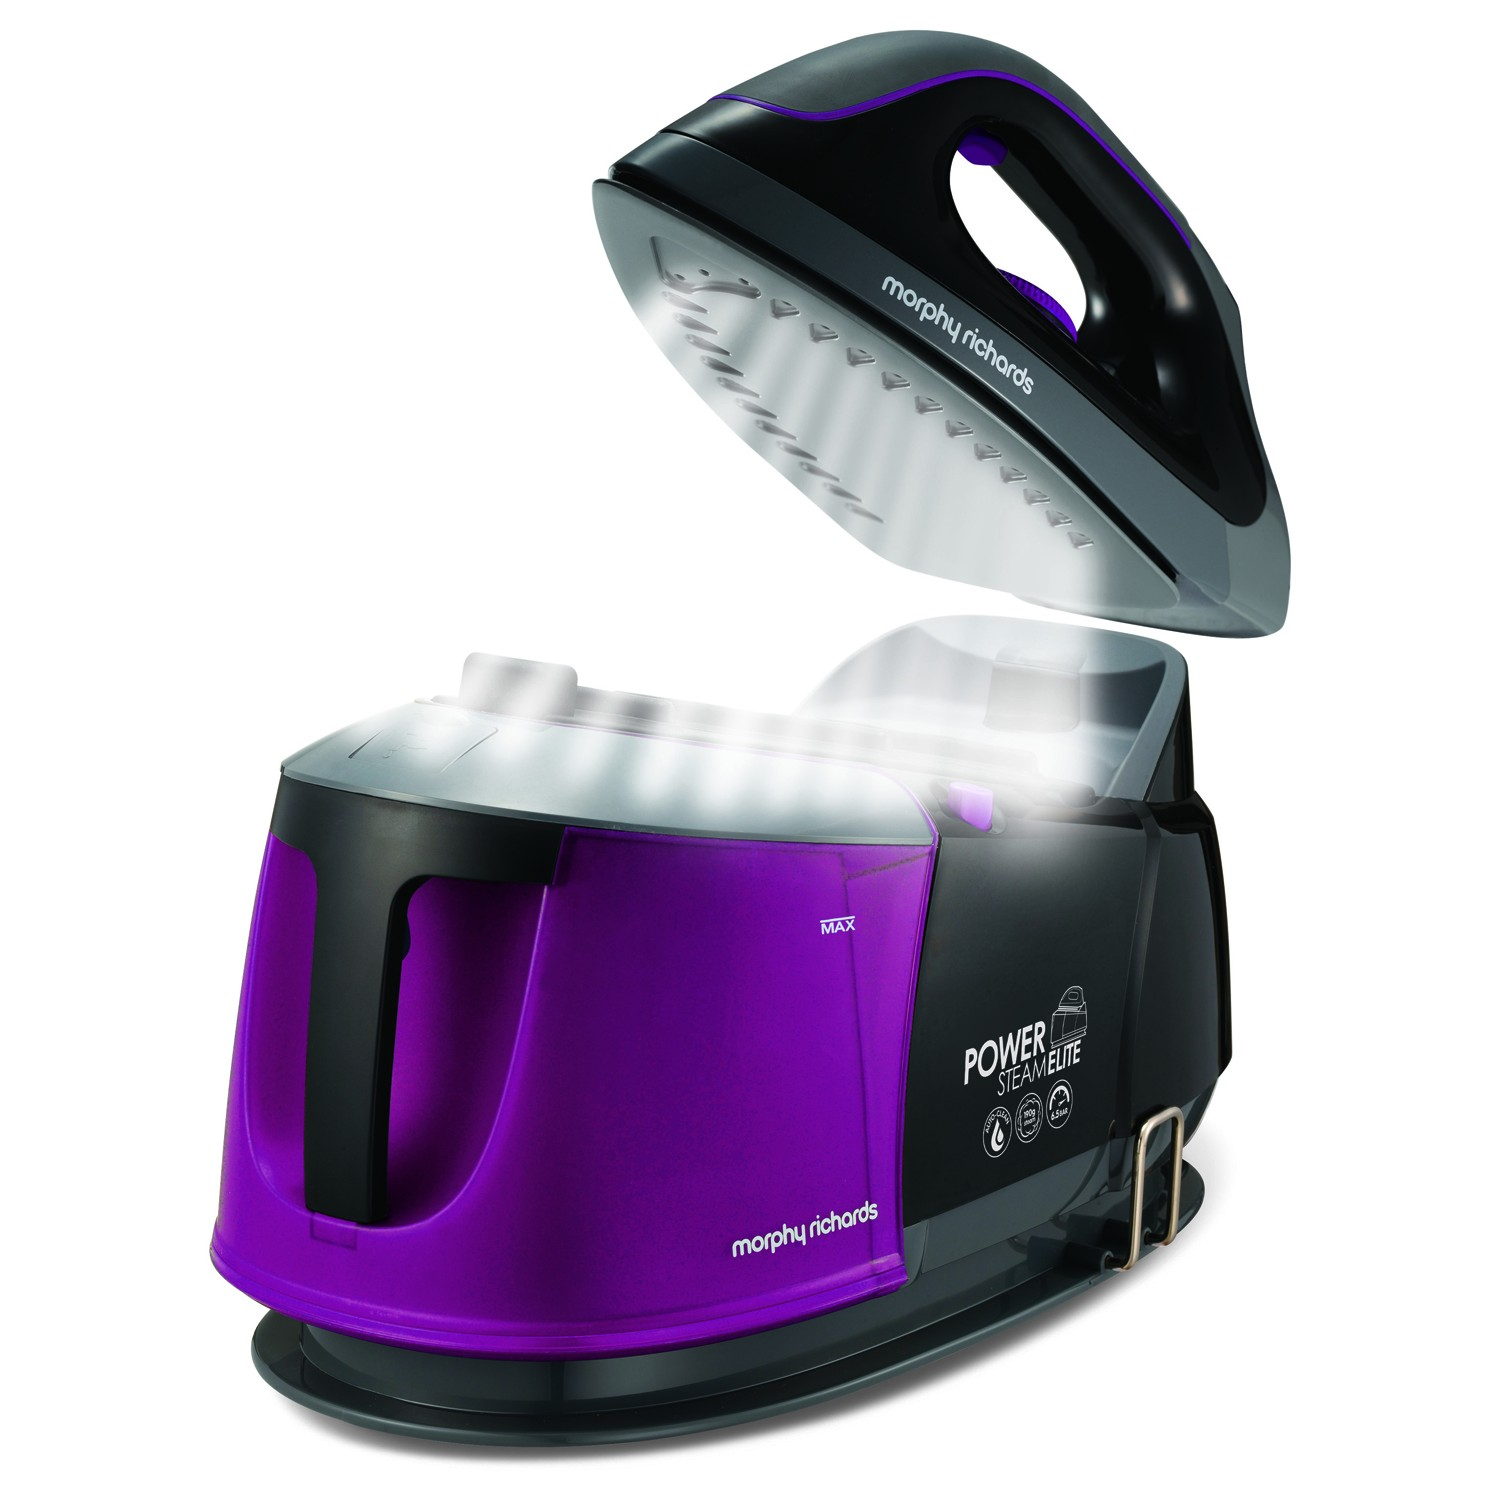 Morphy Richards Power Steam Elite 6 5 Bar Mulberry